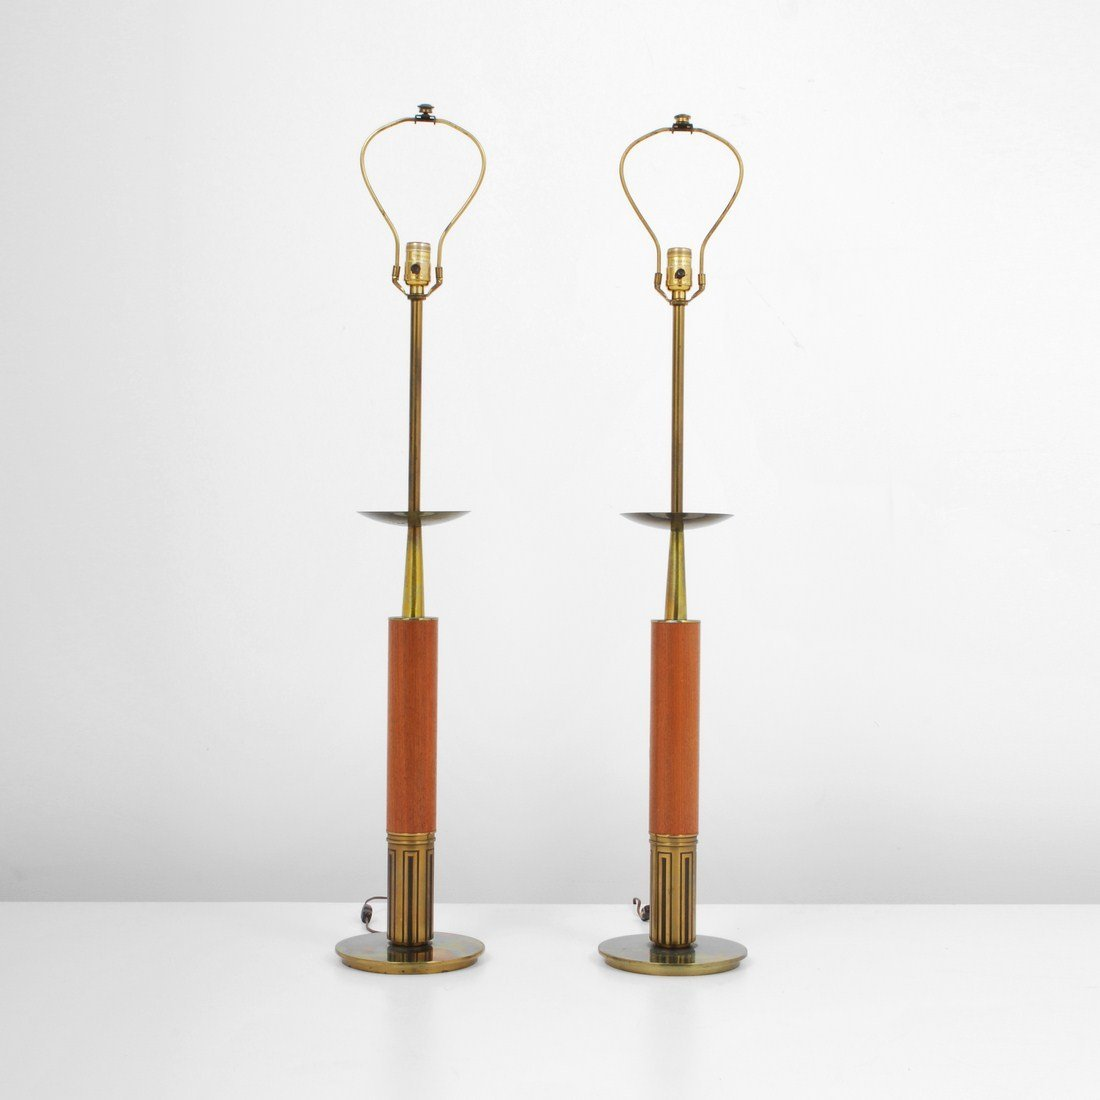 Pair of stiffel lamps tommi parzinger